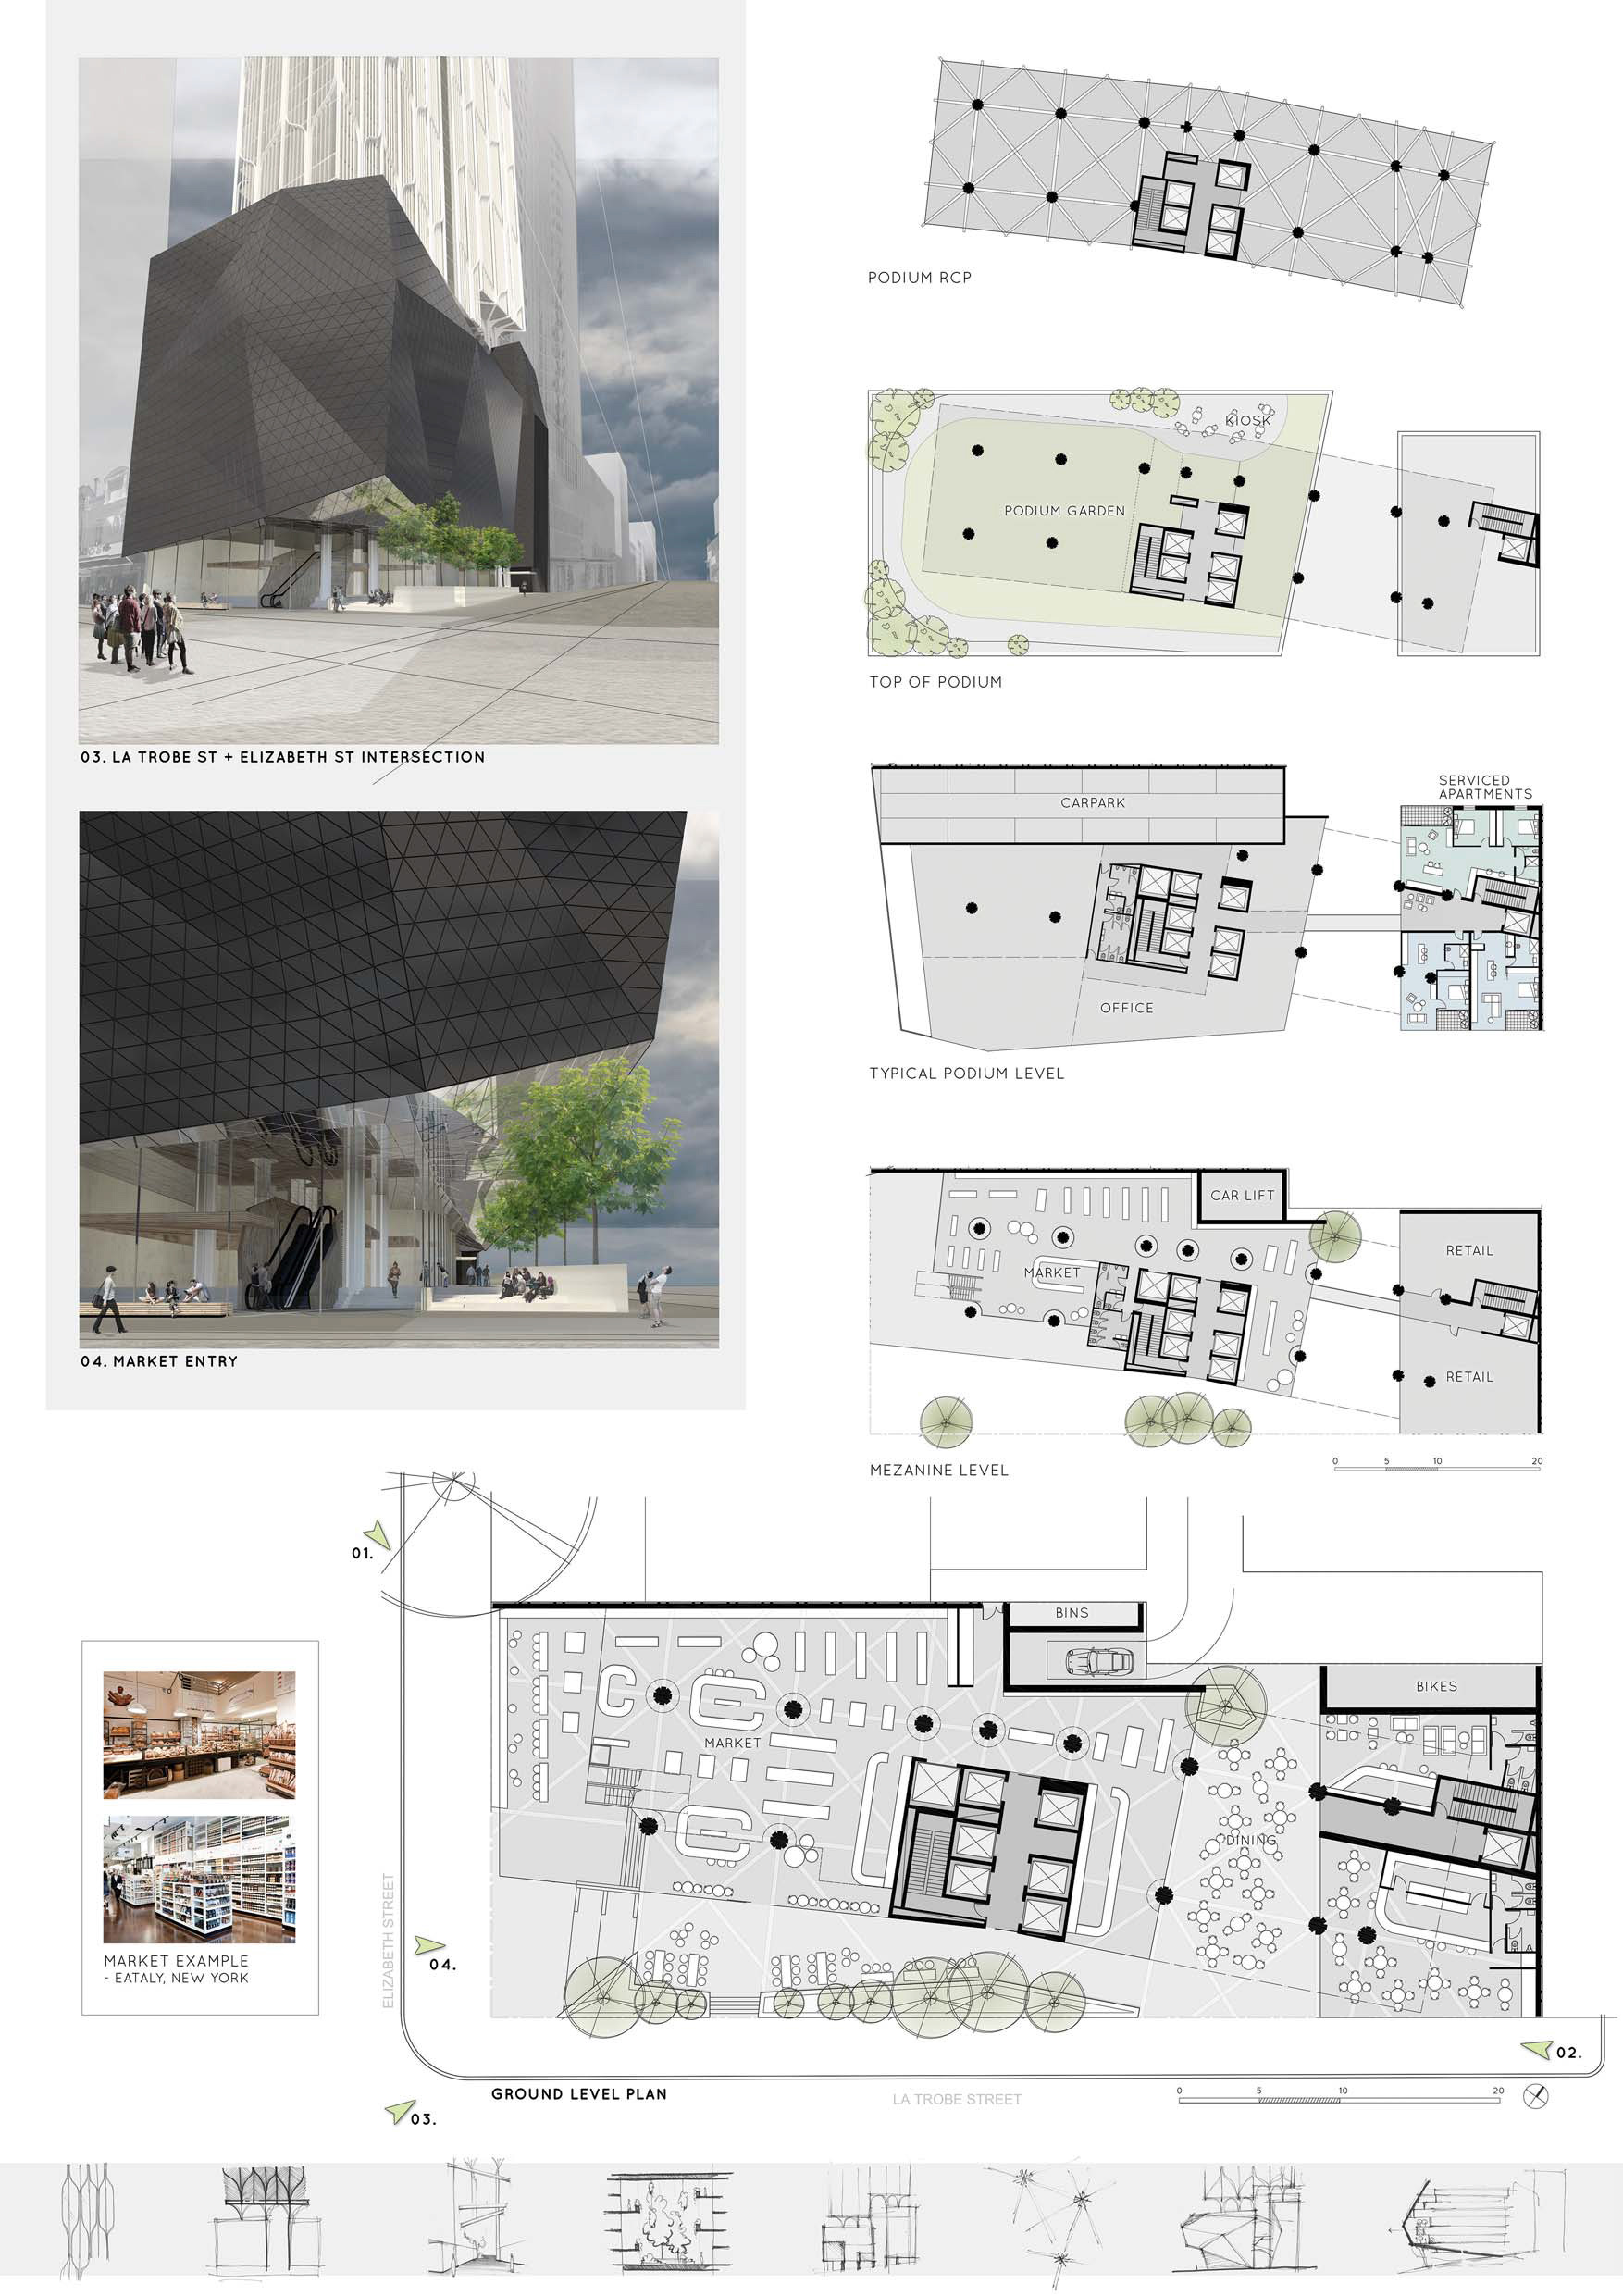 Maike-Design-Tower-reduced-page-size-(4).jpg